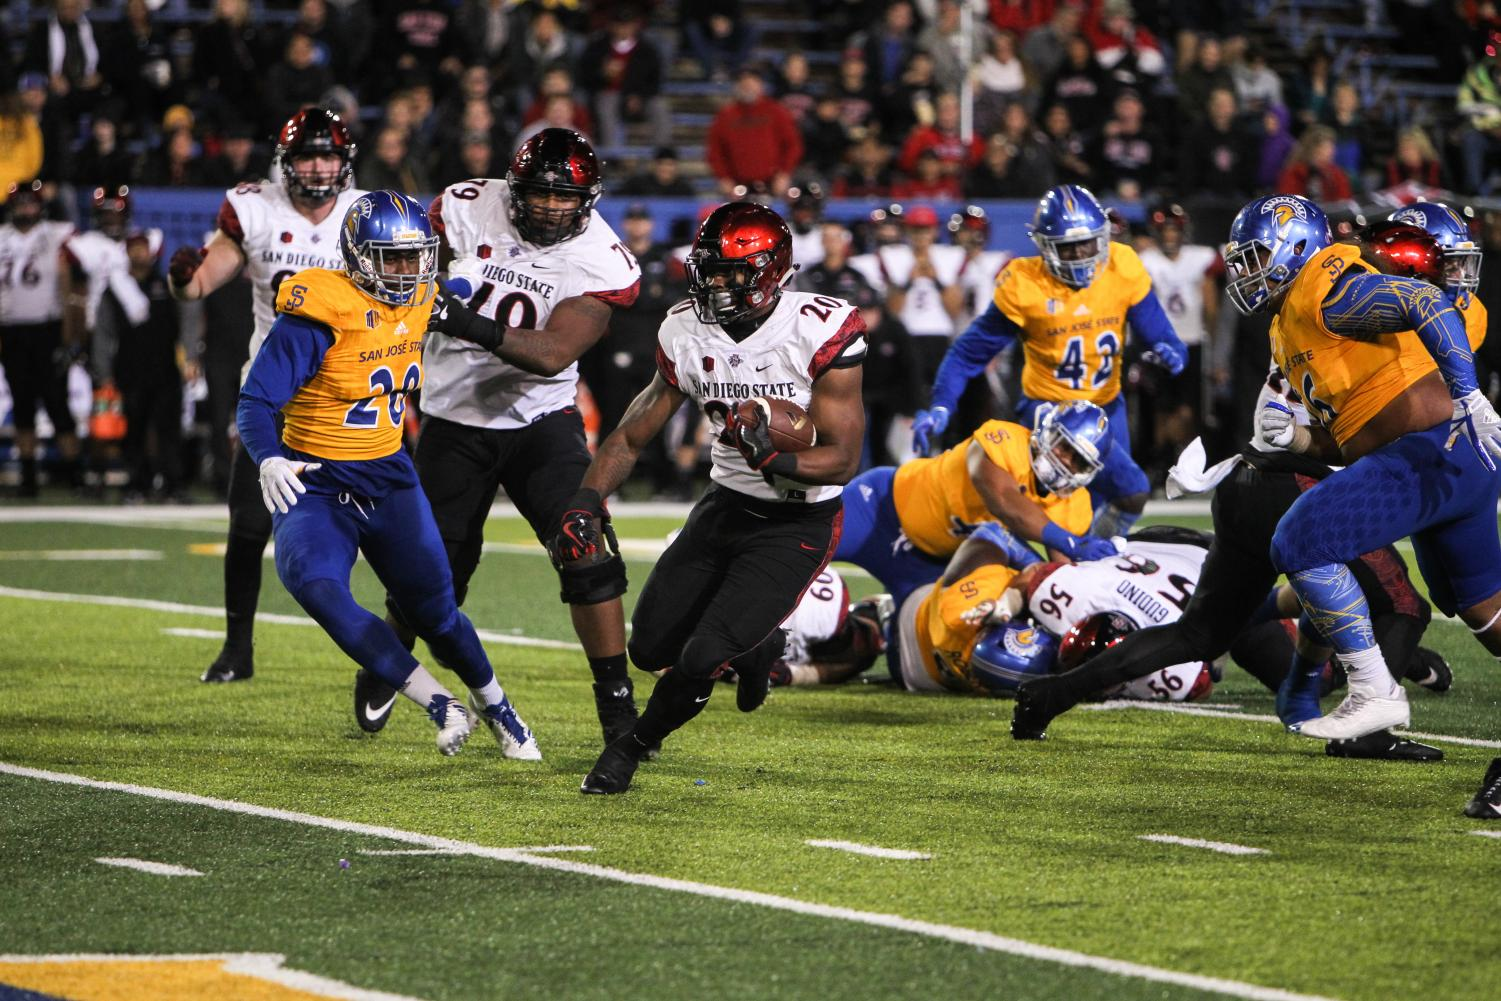 Senior running back Rashaad Penny makes a cut on his way to a touchdown in the third quarter of SDSU's 52-7 win over San Jose State.